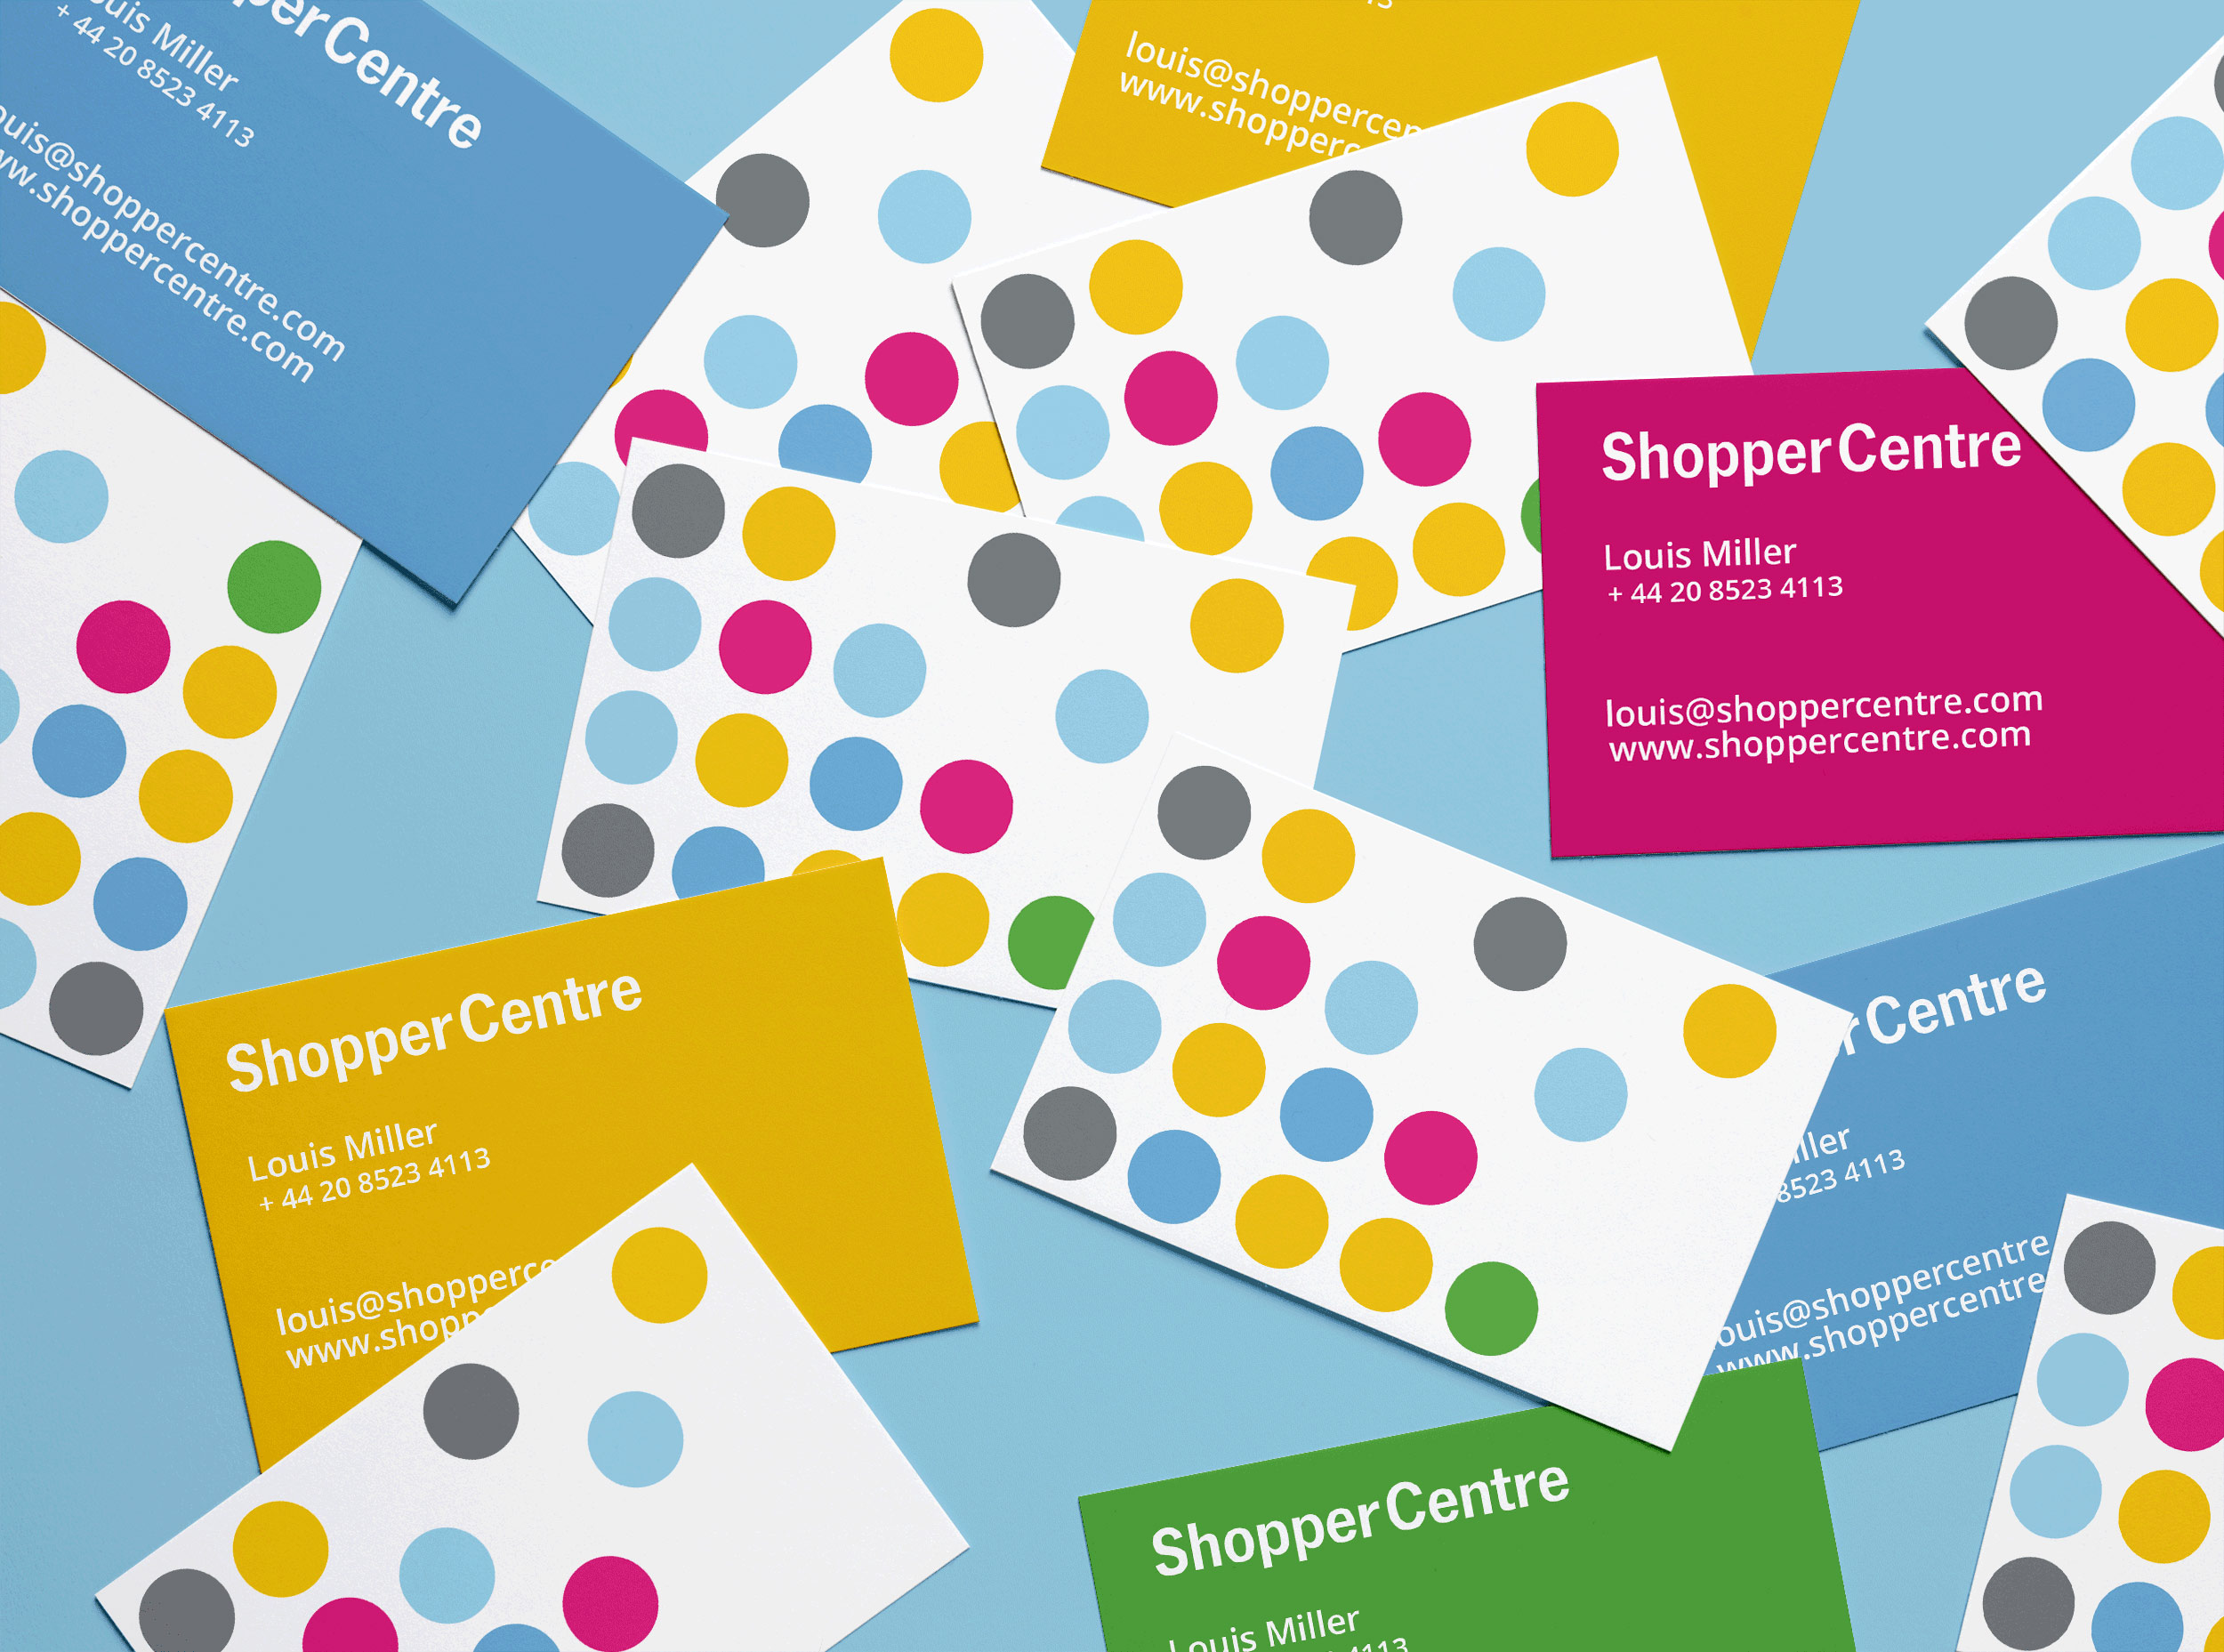 Branding – Shopper Centre Image